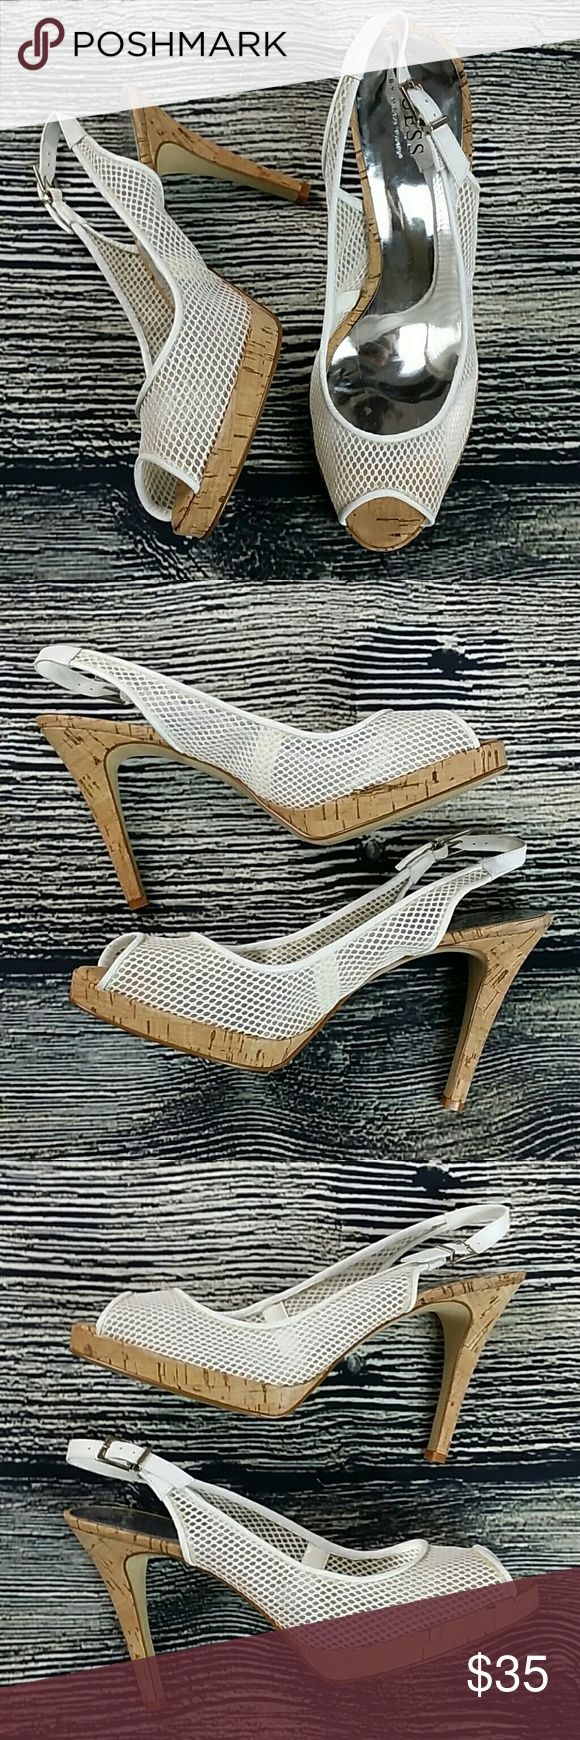 "GUESS MARCIANO GWMIRACLE High heels 9 white GUESS MARCIANO GW MIRACLE High Heel Cork Platform Heels white Mesh Slingbacks Pumps 9M Heel height 4.5"" C2 Guess by Marciano Shoes Platforms"